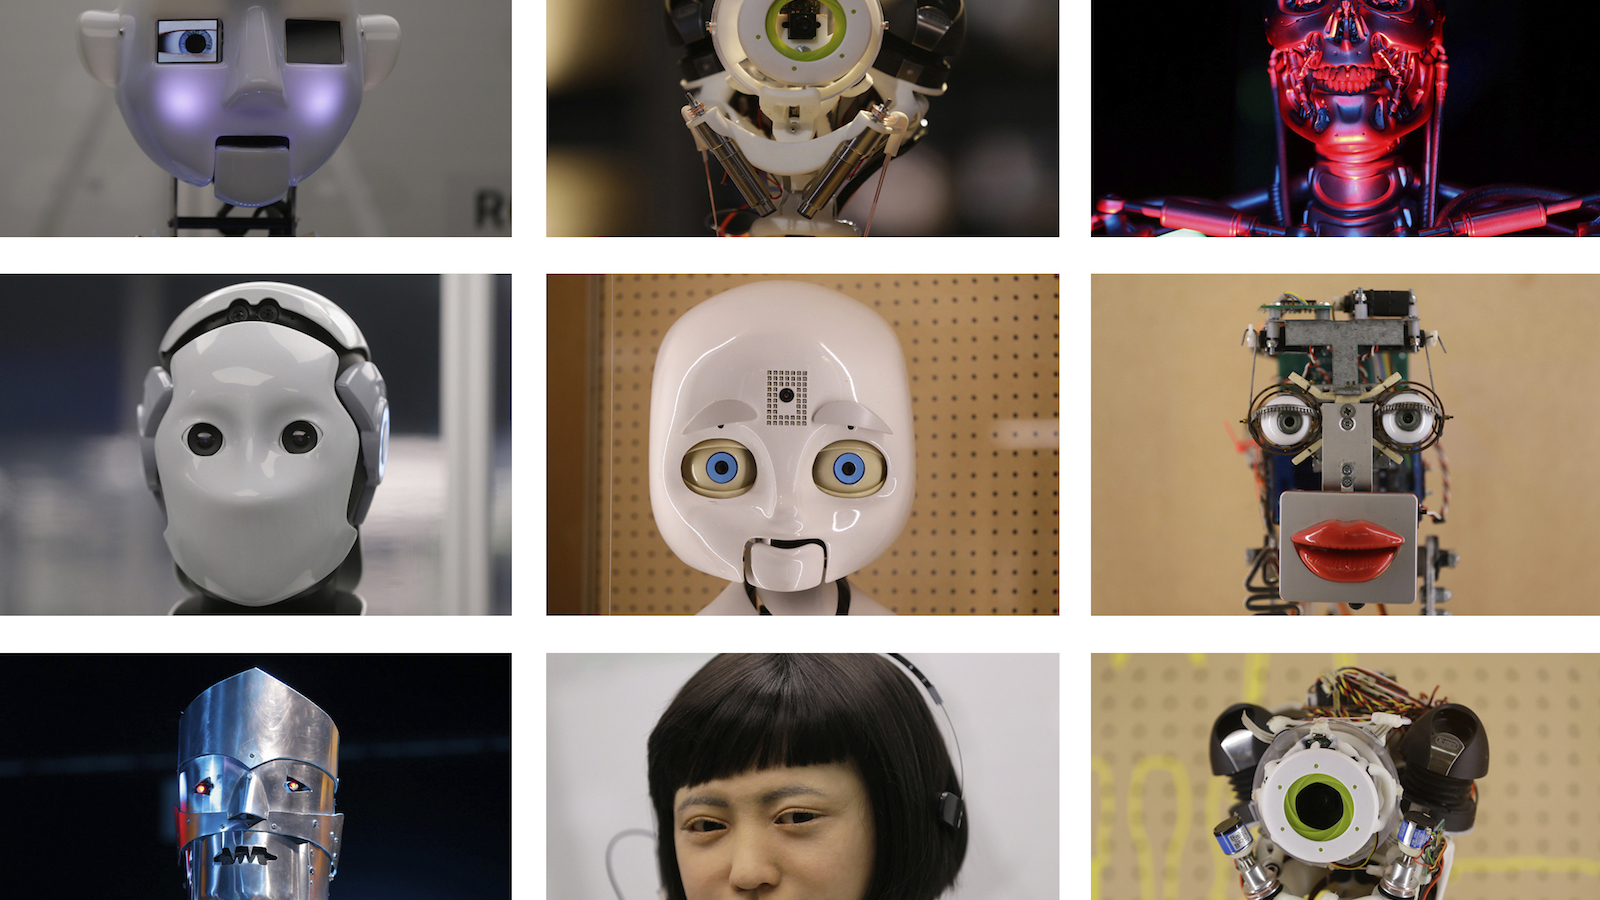 This combination photo shows a selection of robot faces, from futuristic comic book to life like newsreaders, on display during a press preview for the Robots exhibition held at the Science Museum in London, Tuesday, Feb. 7, 2017. The exhibition which shows 500 years of mechanical and robotic advances is open to the public form Feb. 8 through to Sept. 3. (AP Photo/Alastair Grant)